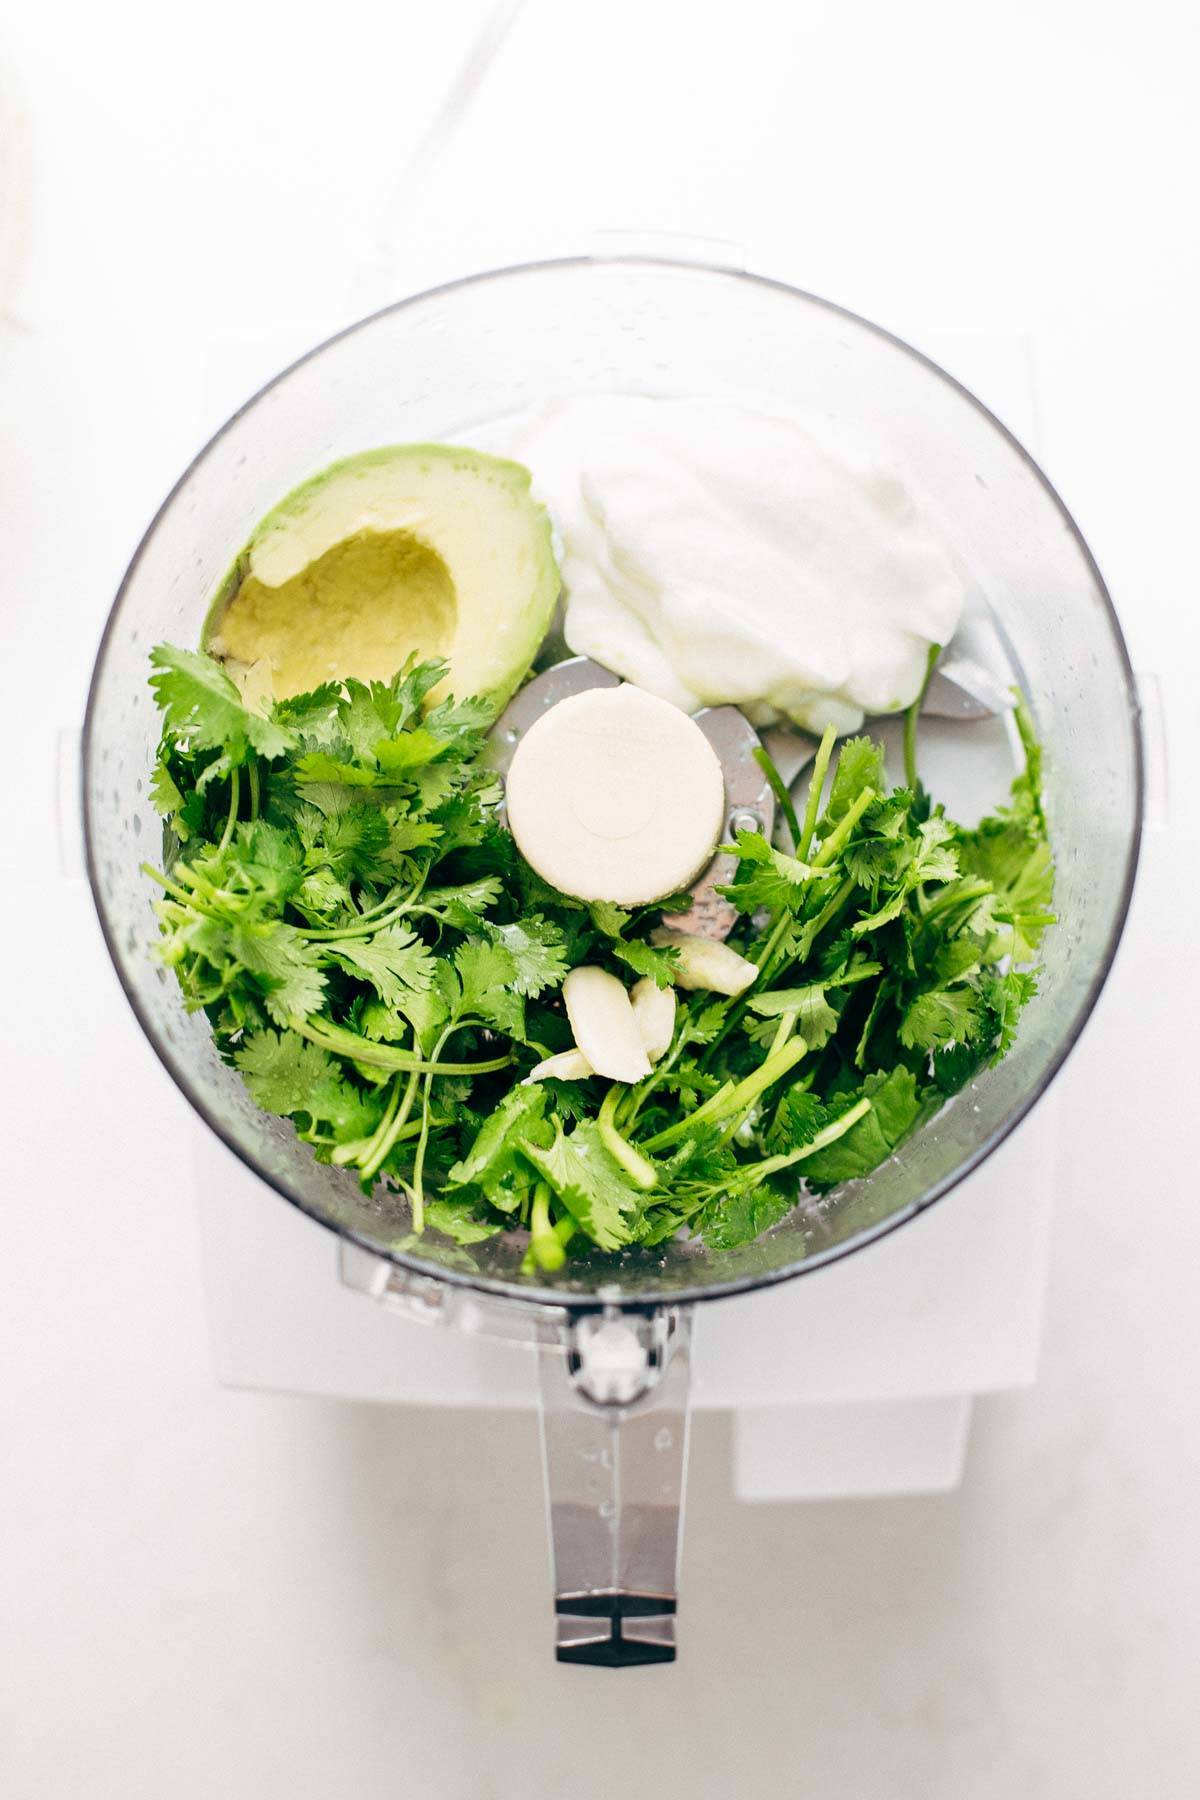 5 Minute Cilantro Avocado Dressing - made with easy ingredients like cilantro, avocado, Greek yogurt, garlic, and lime juice. | pinchofyum.com